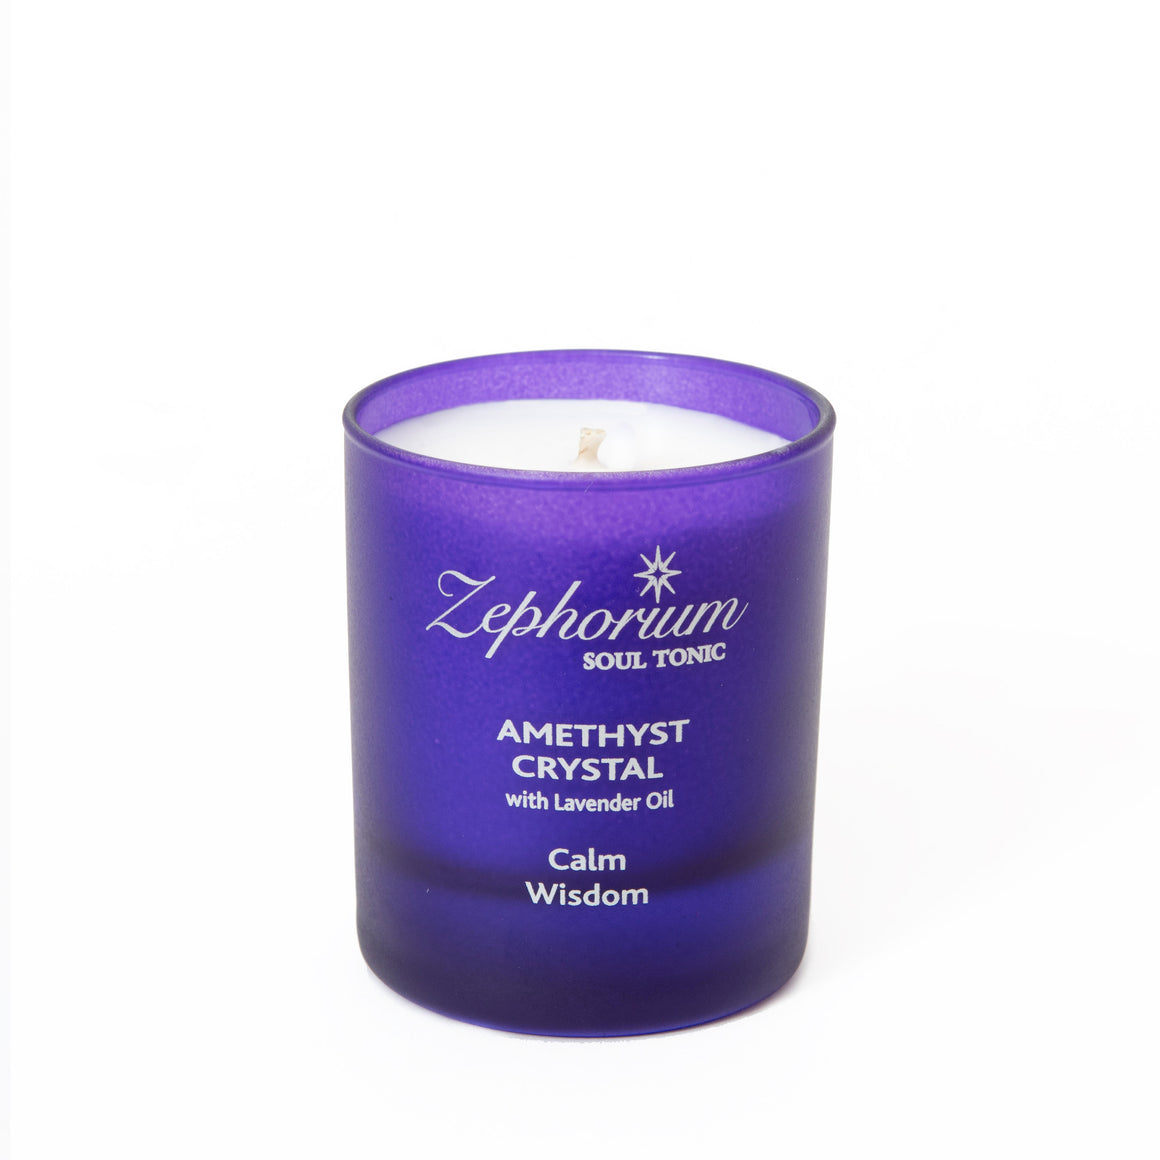 Amethyst Crystal Coconut Wax Candle